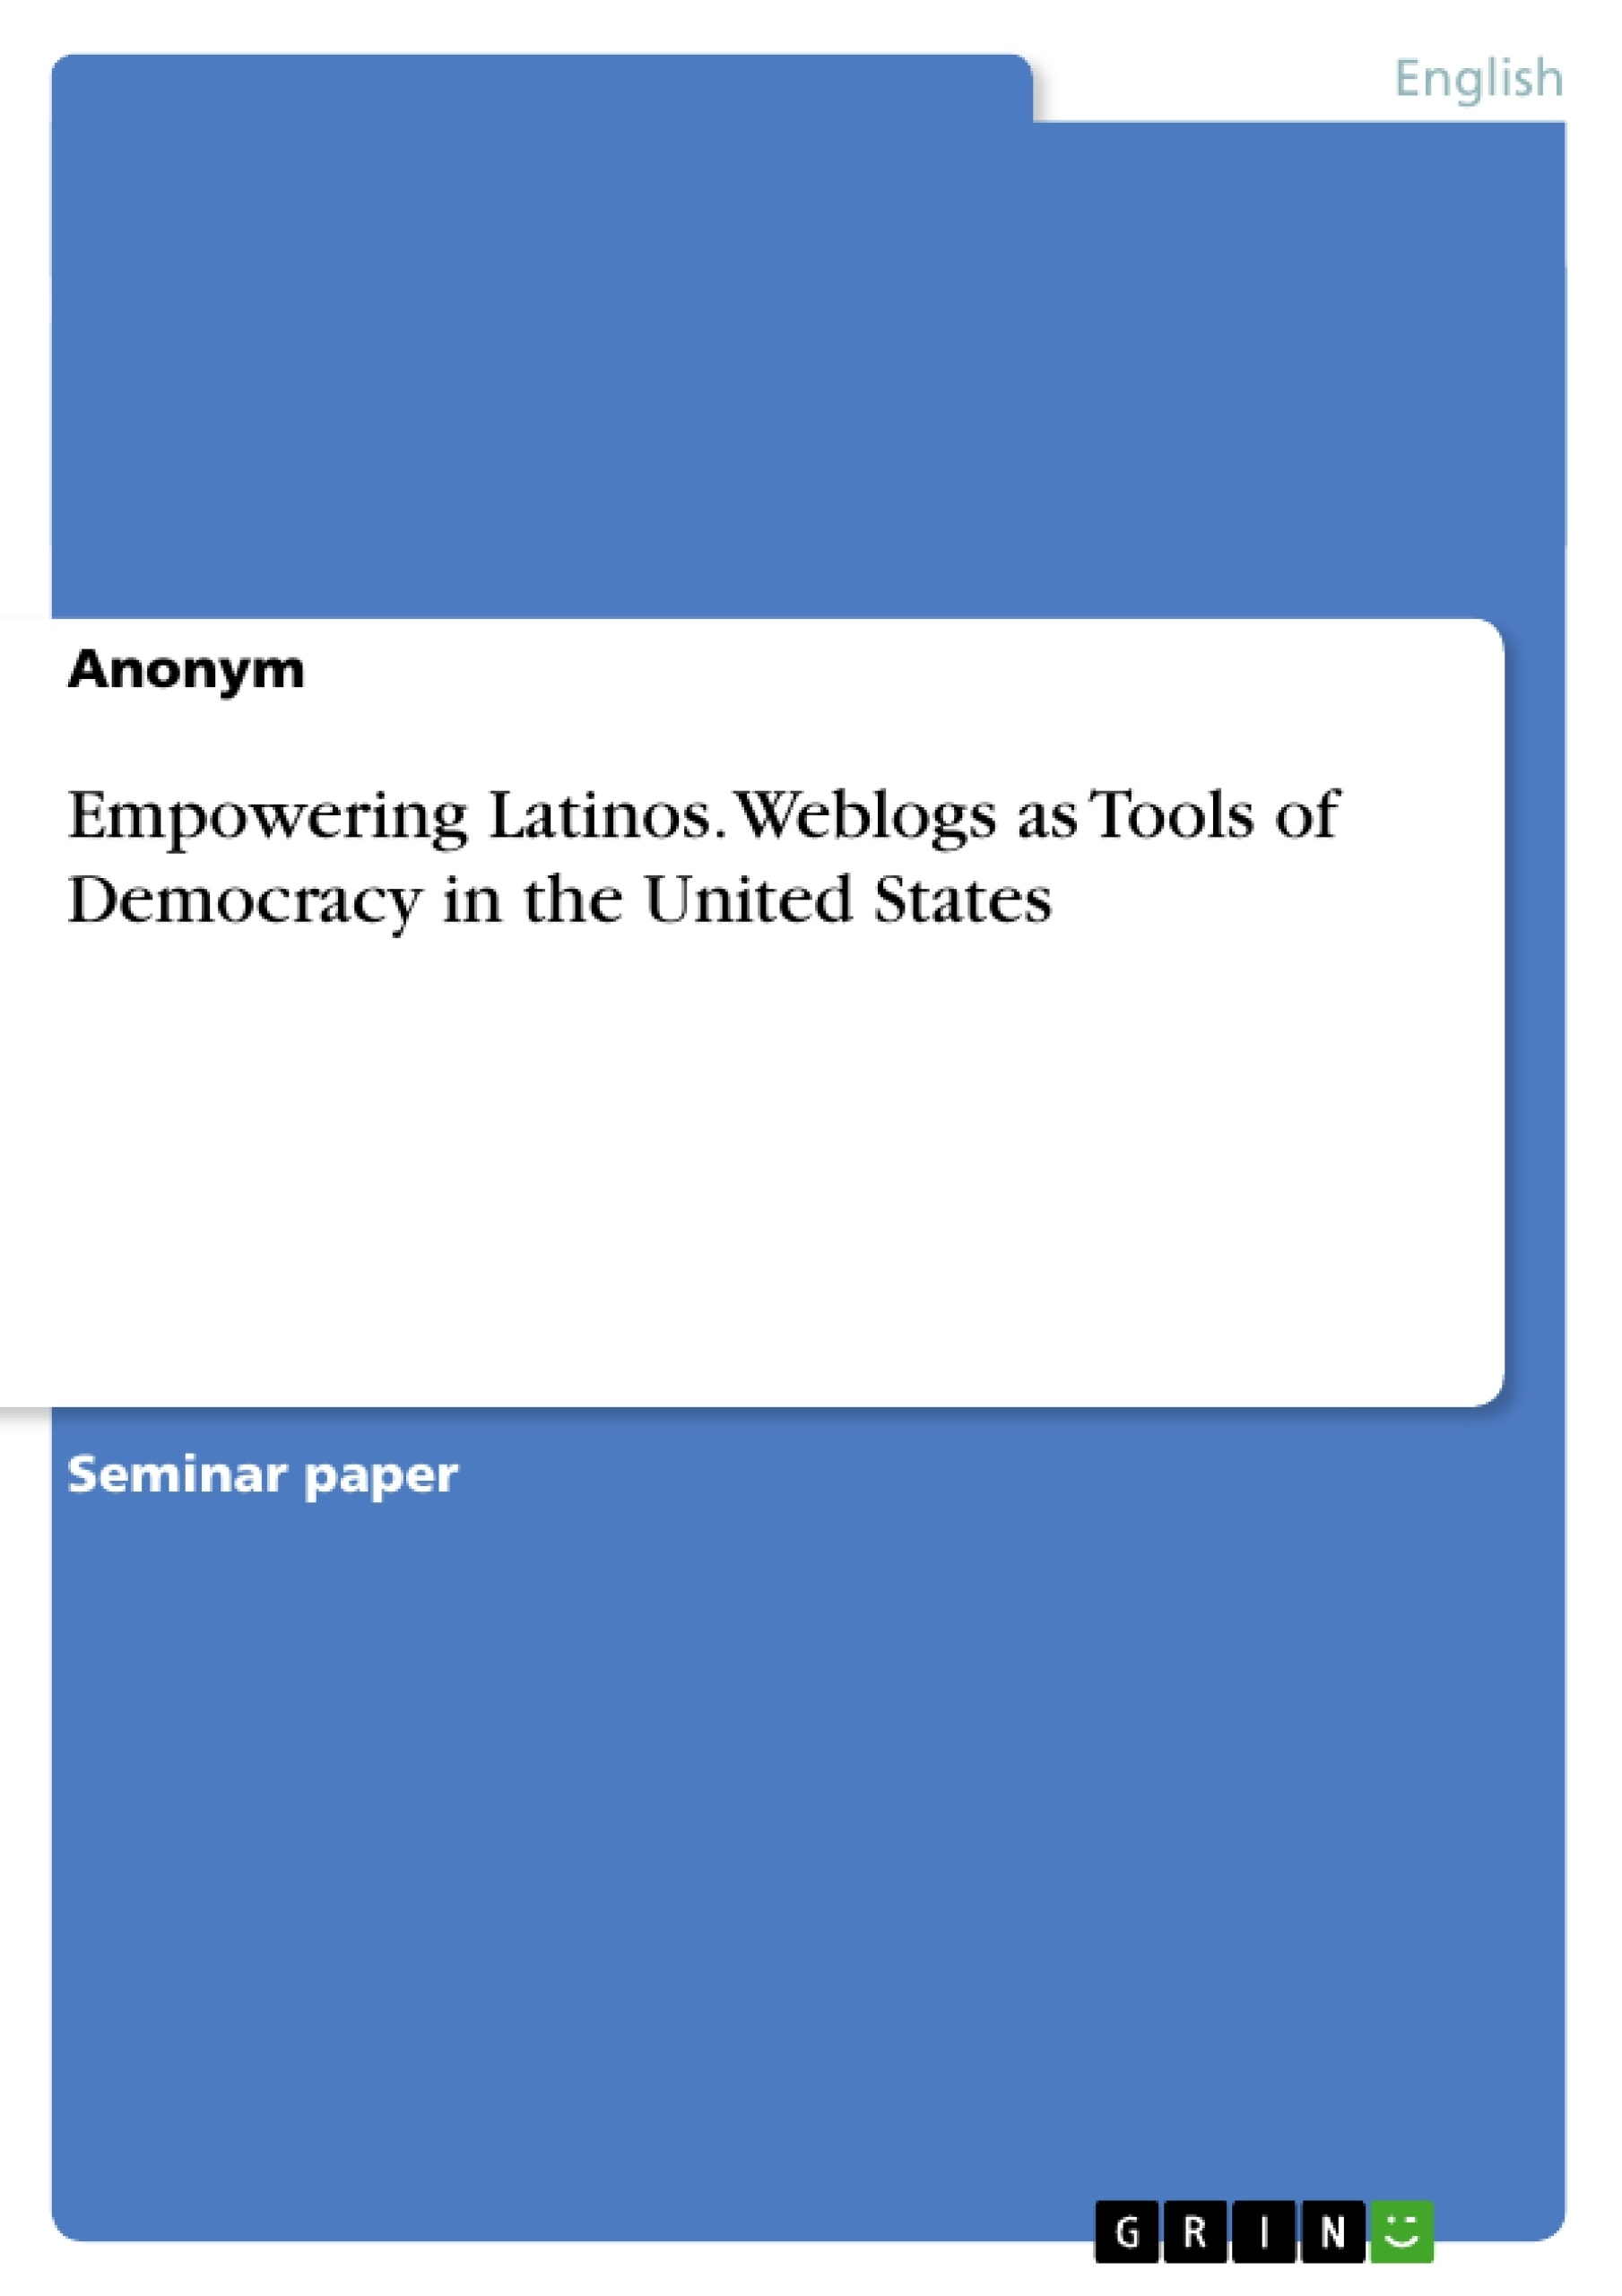 Title: Empowering Latinos. Weblogs as Tools of Democracy in the United States